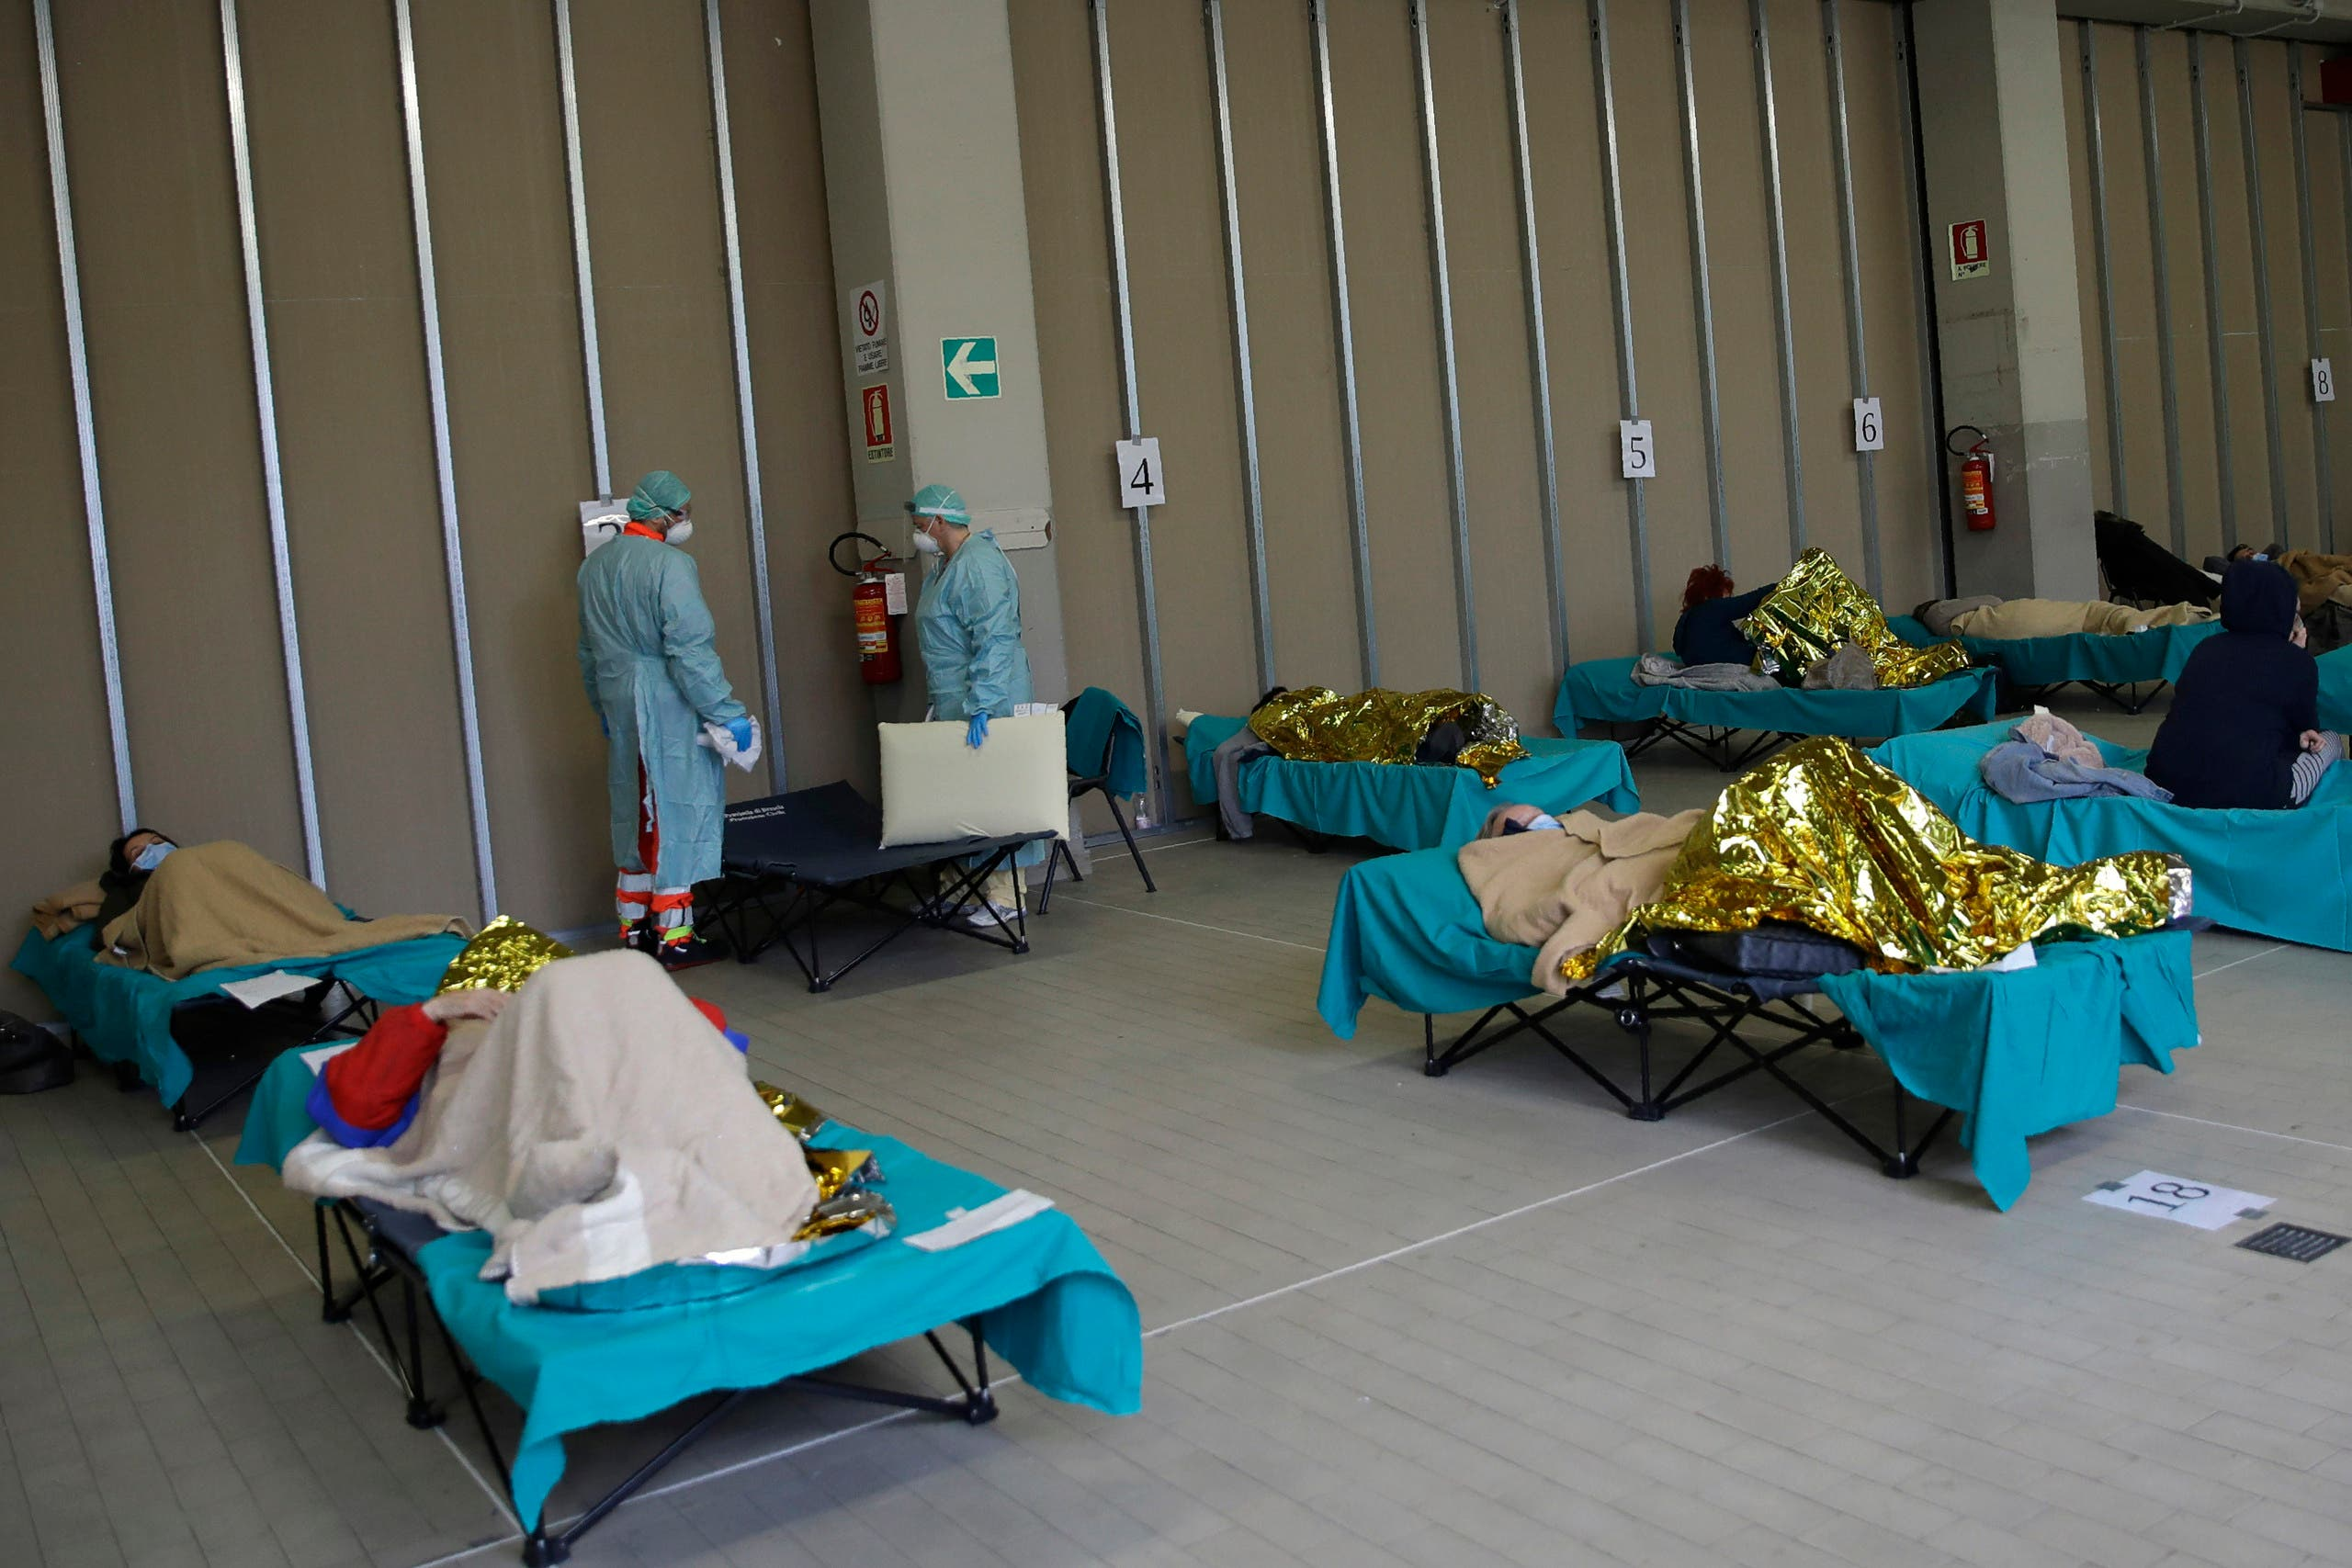 Patients lie on beds at one of the emergency structures that were set up to ease procedures at the Brescia hospital, northern Italy on March 12, 2020. (AP)